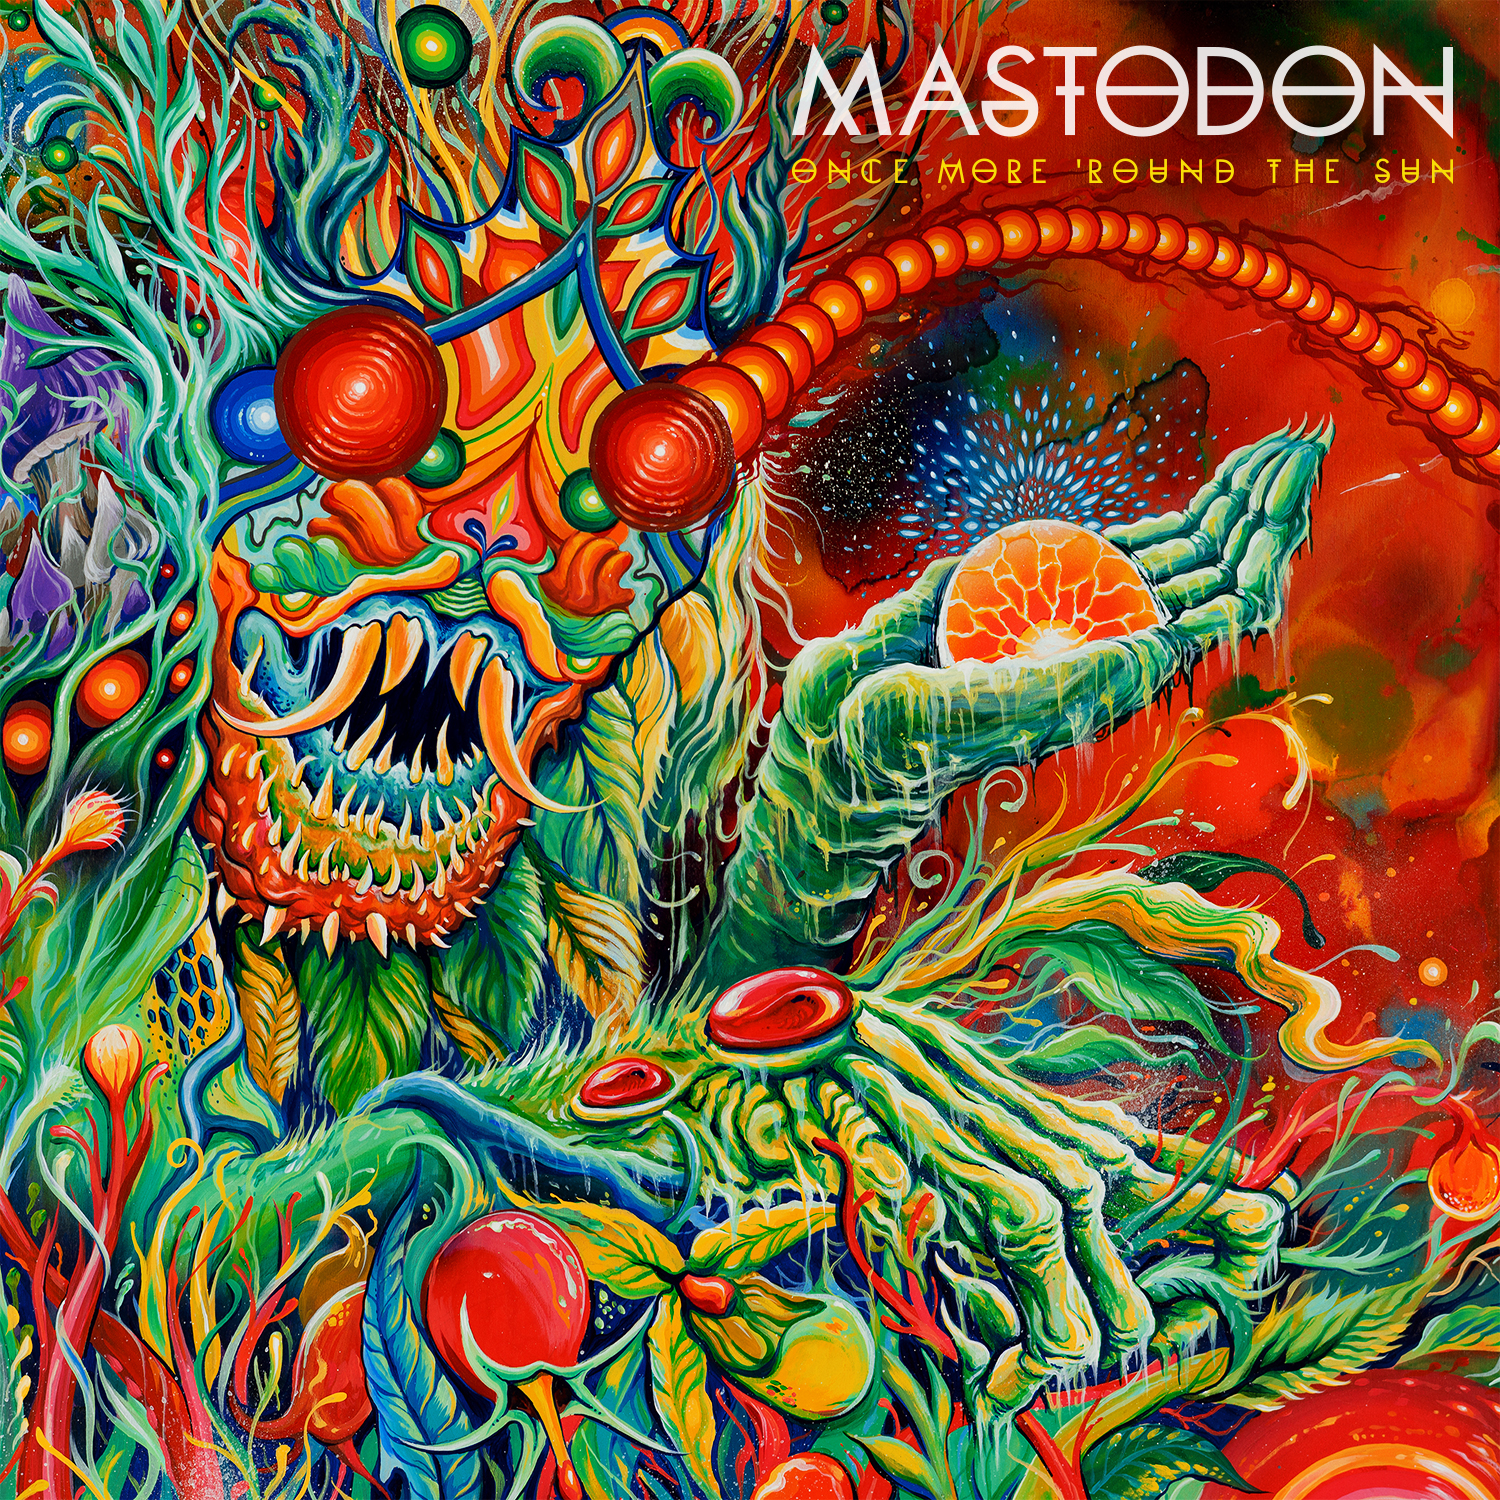 mastodon - one more round the sun